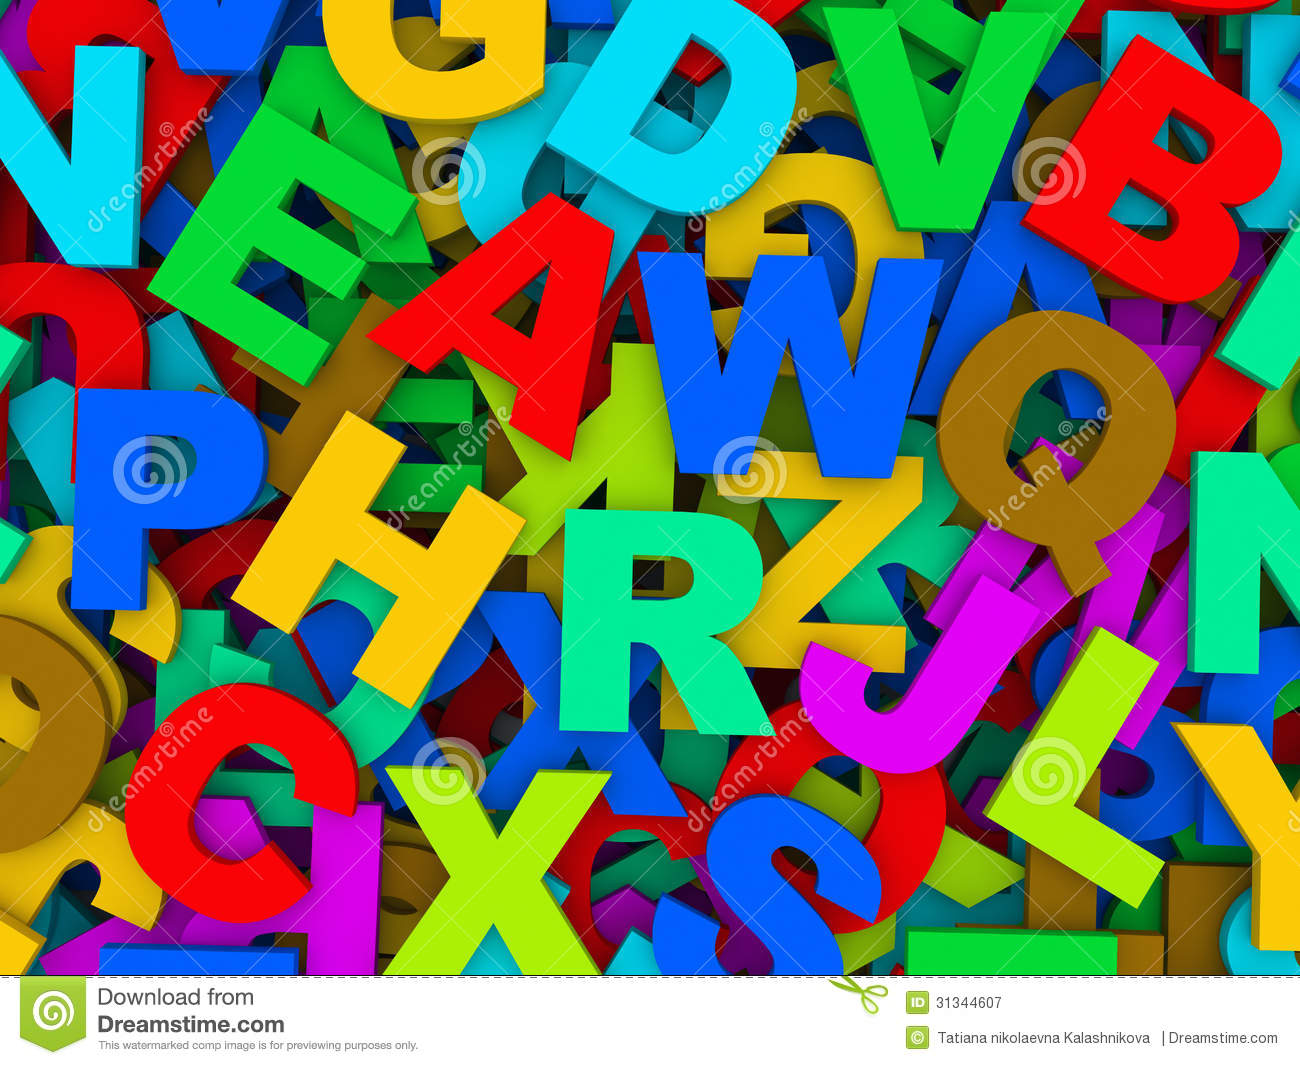 ninth letter of the alphabet stock photos images letters of the alphabet royalty free stock 265